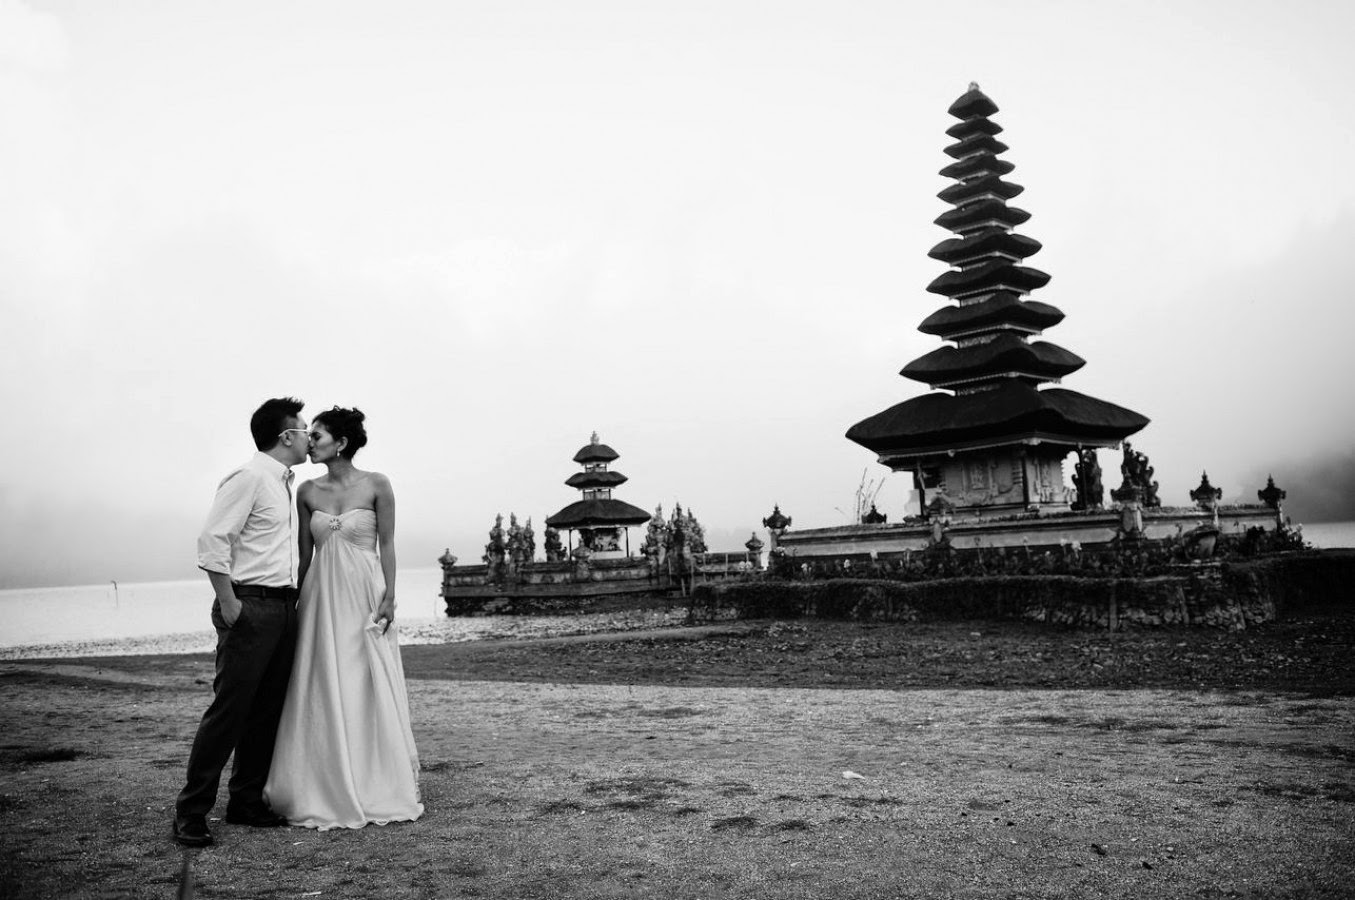 bali black white pagoda kiss